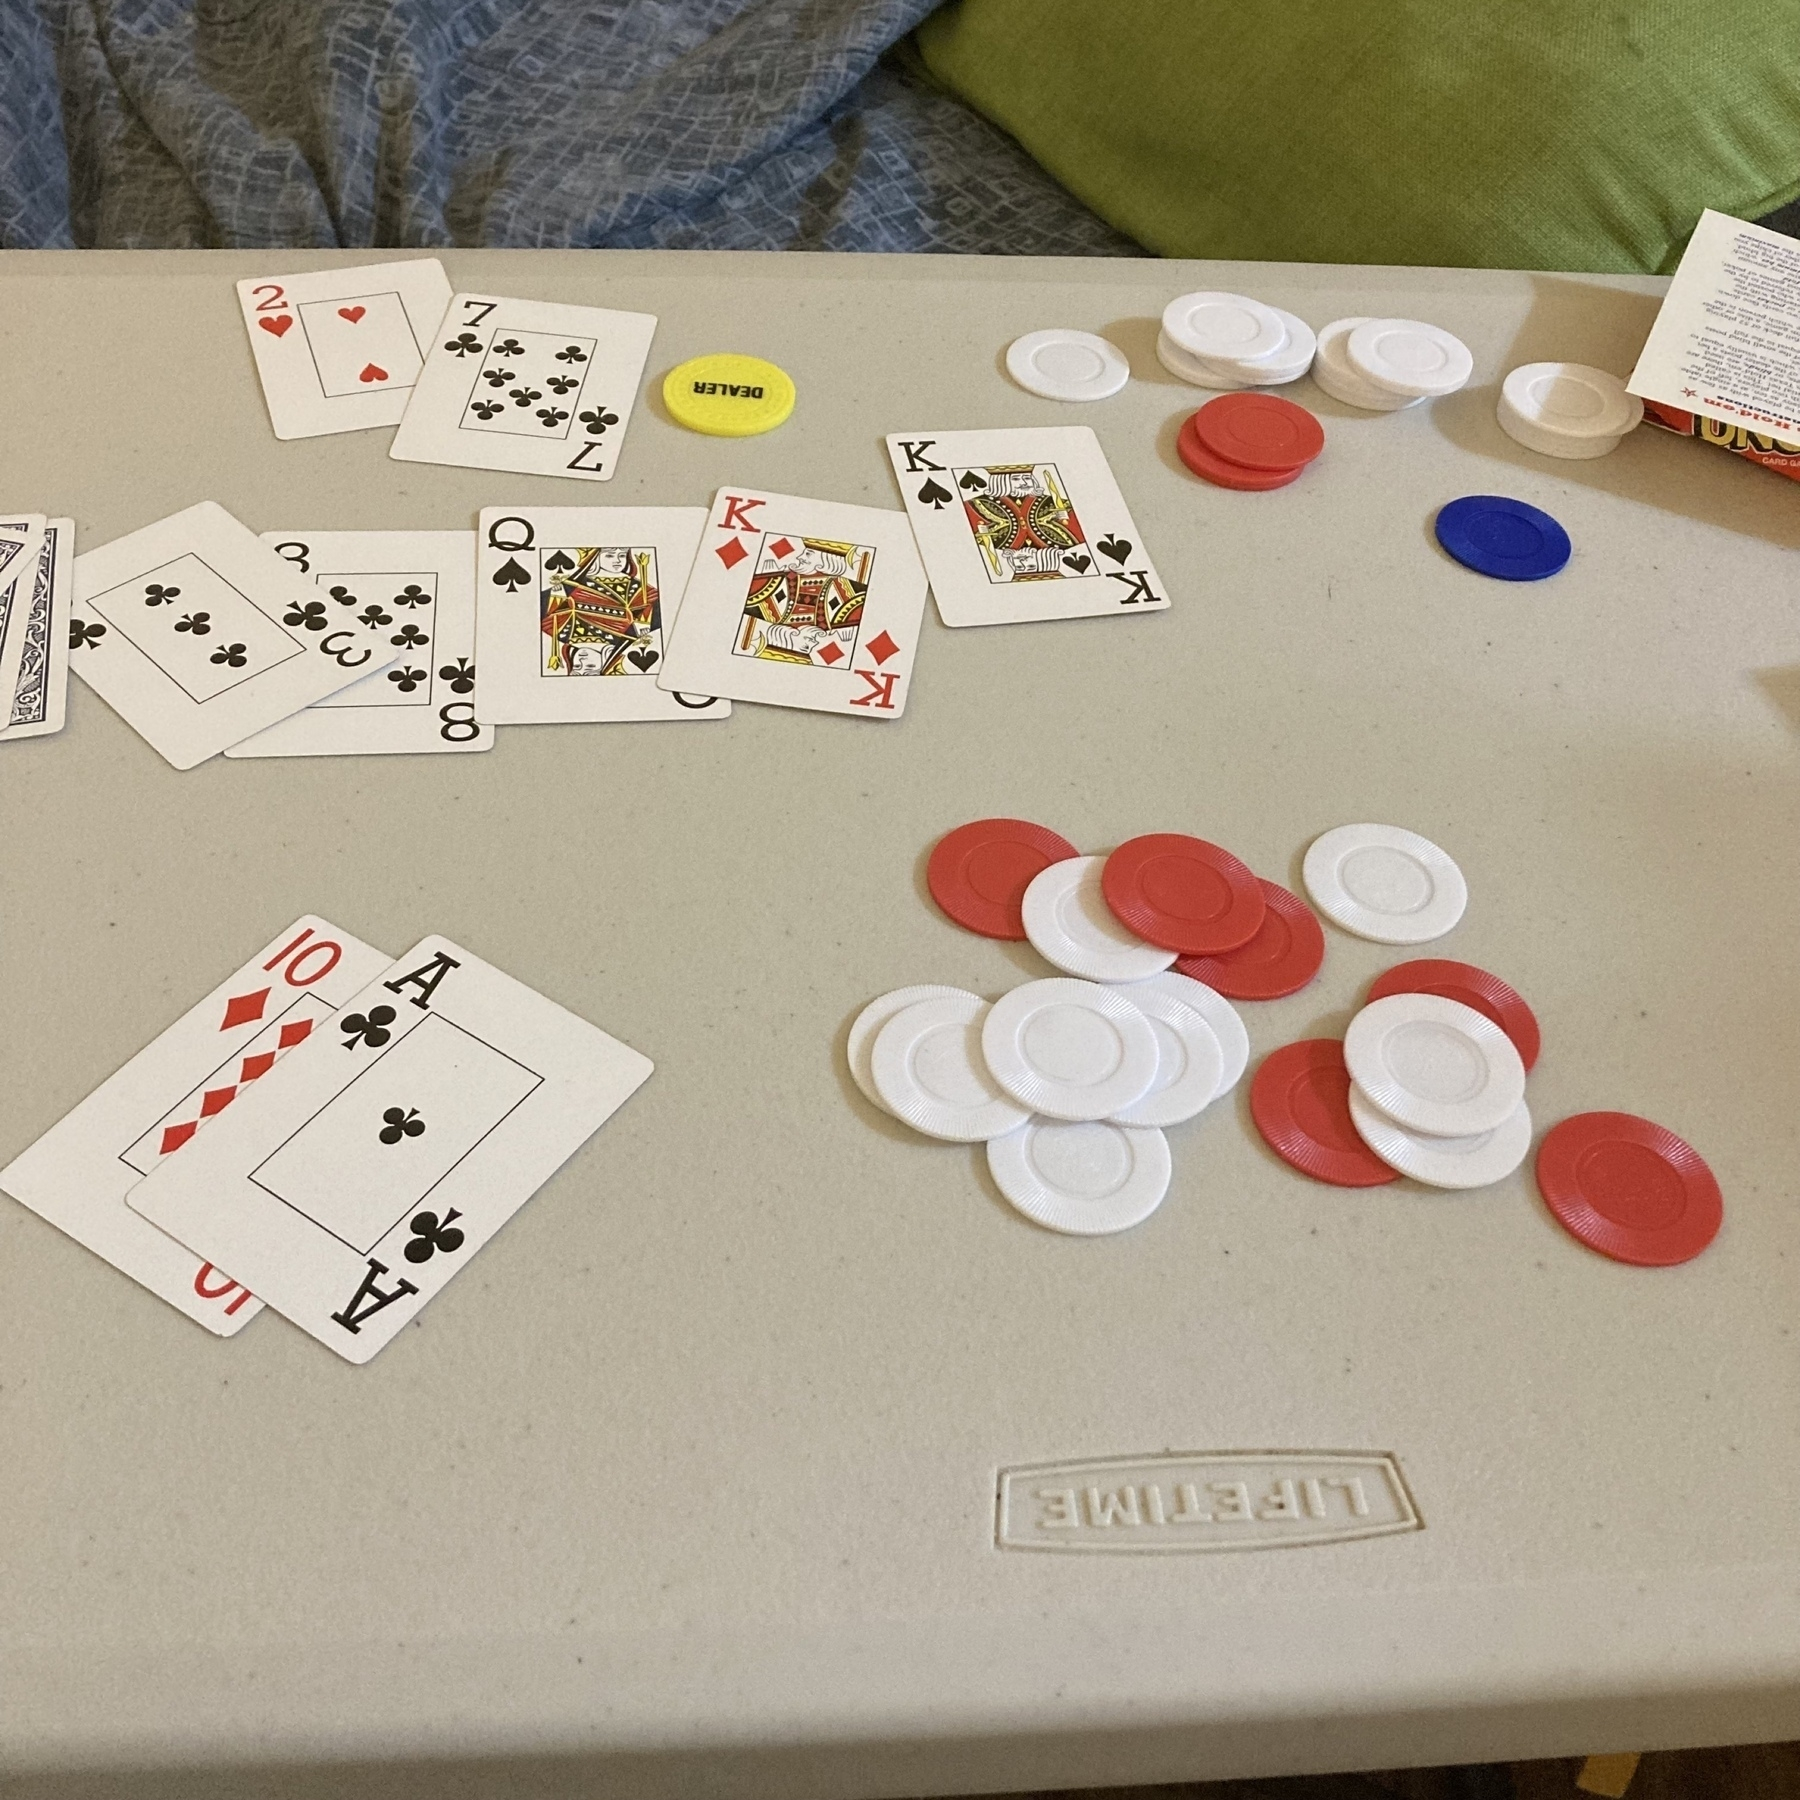 Poker cards and I am losing.